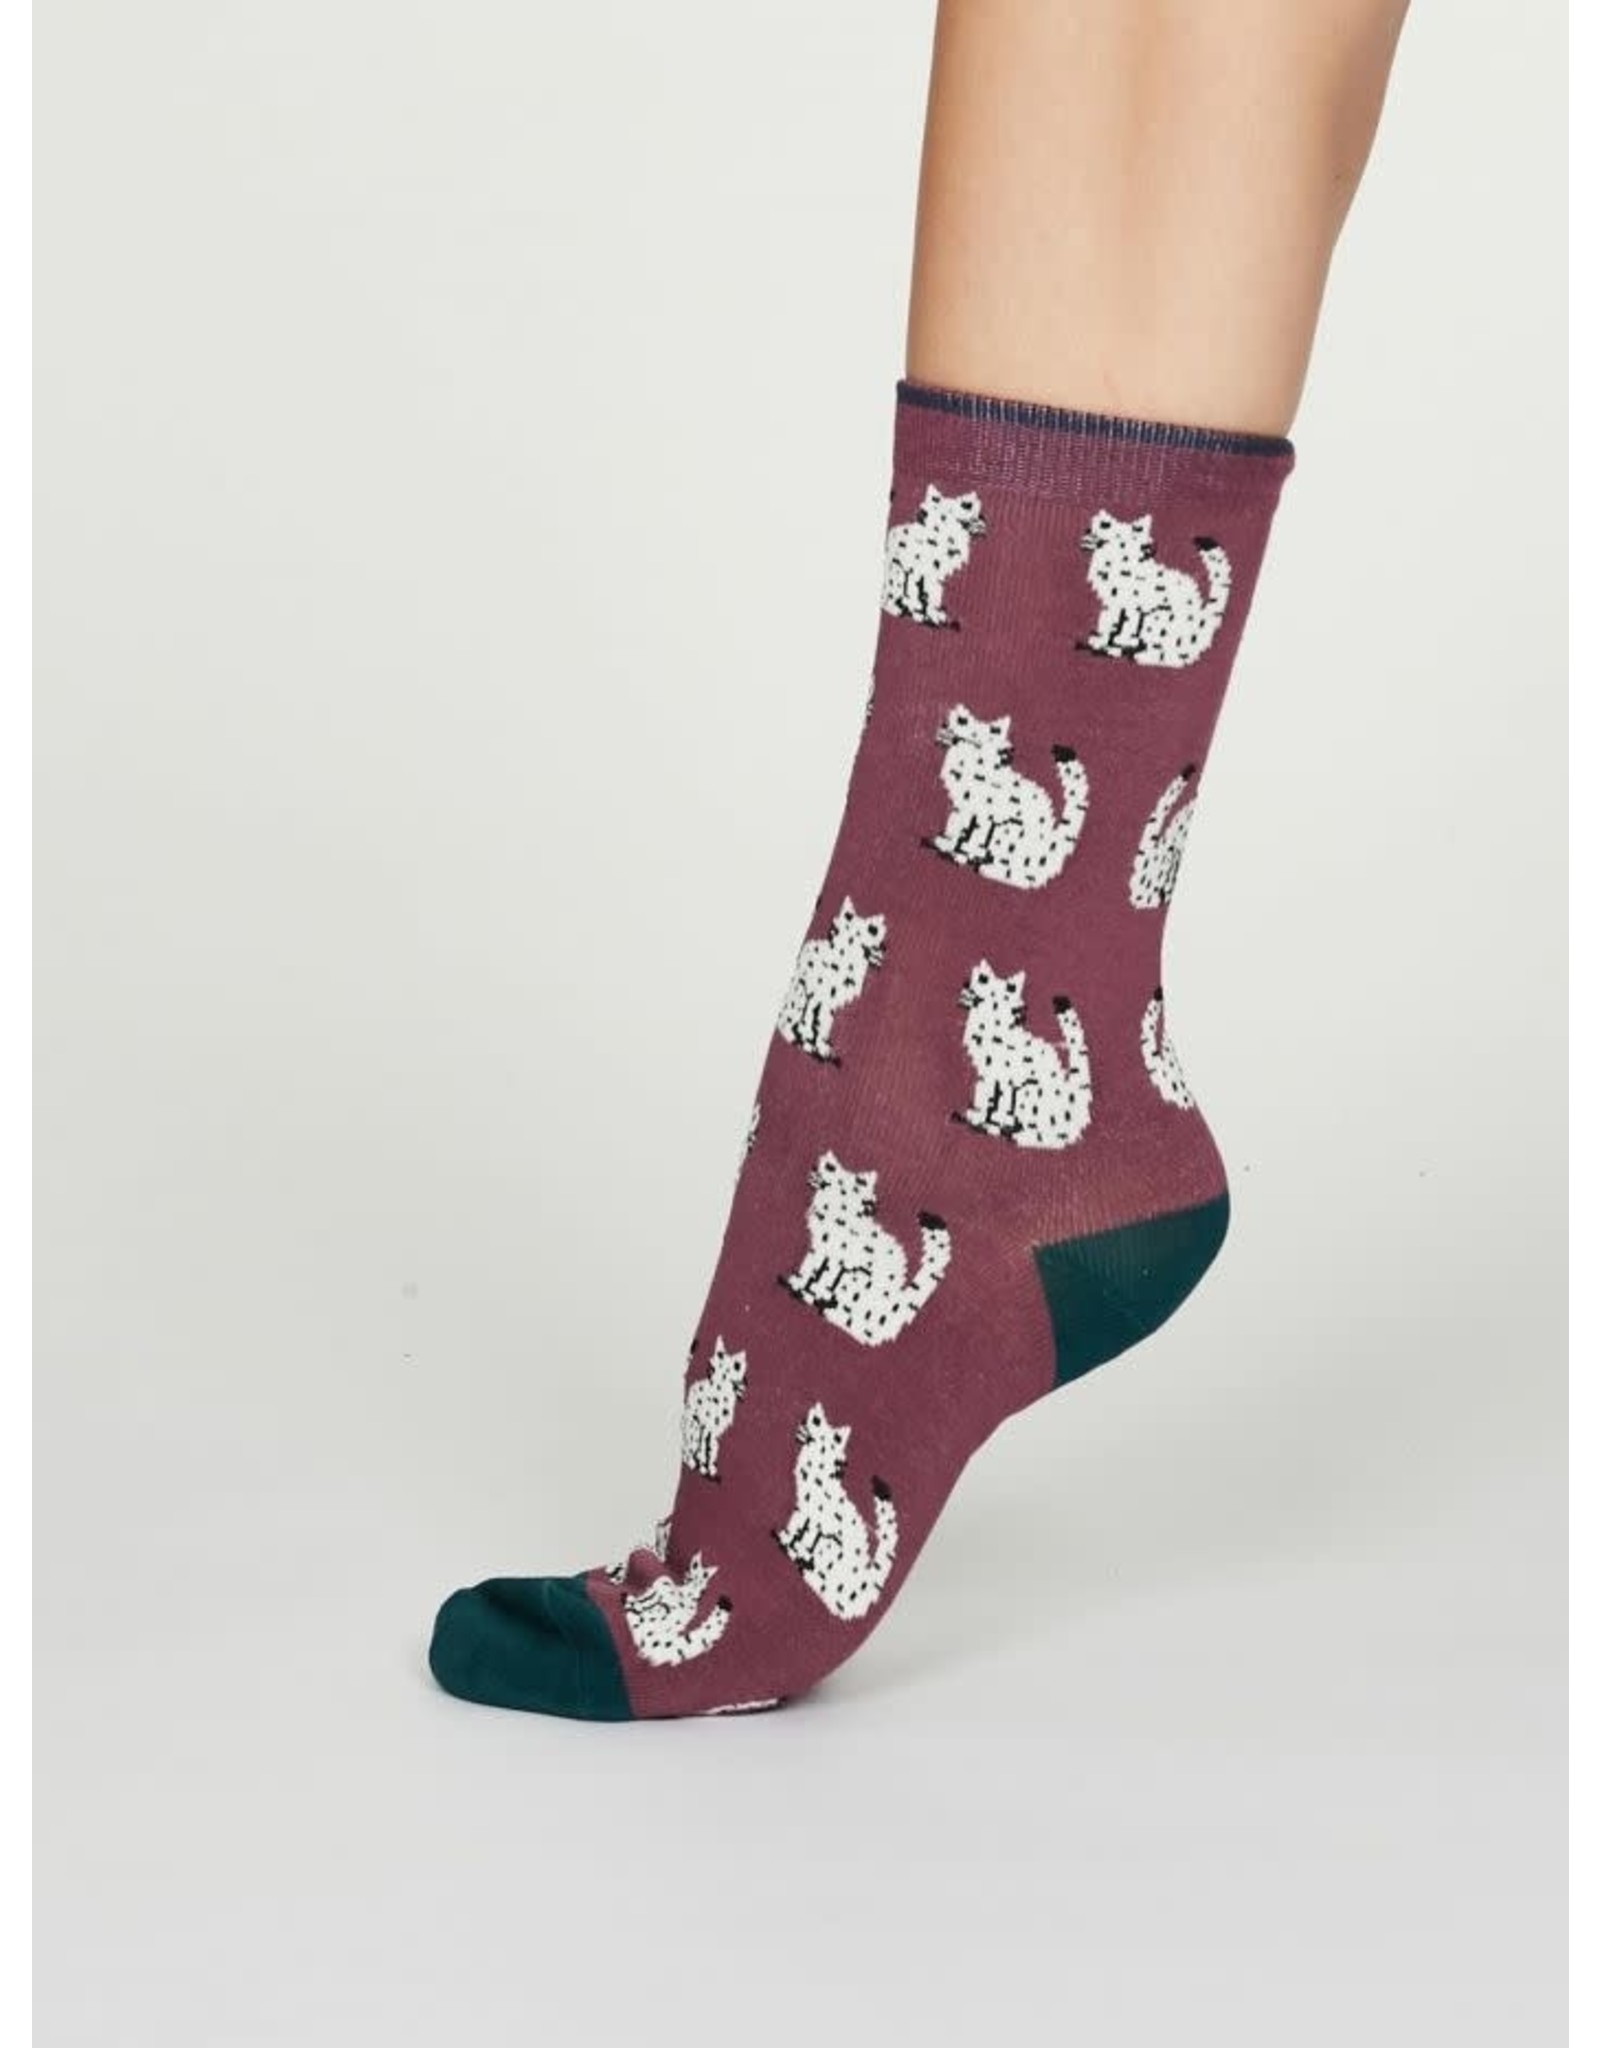 Thought Thought Kitty Socks